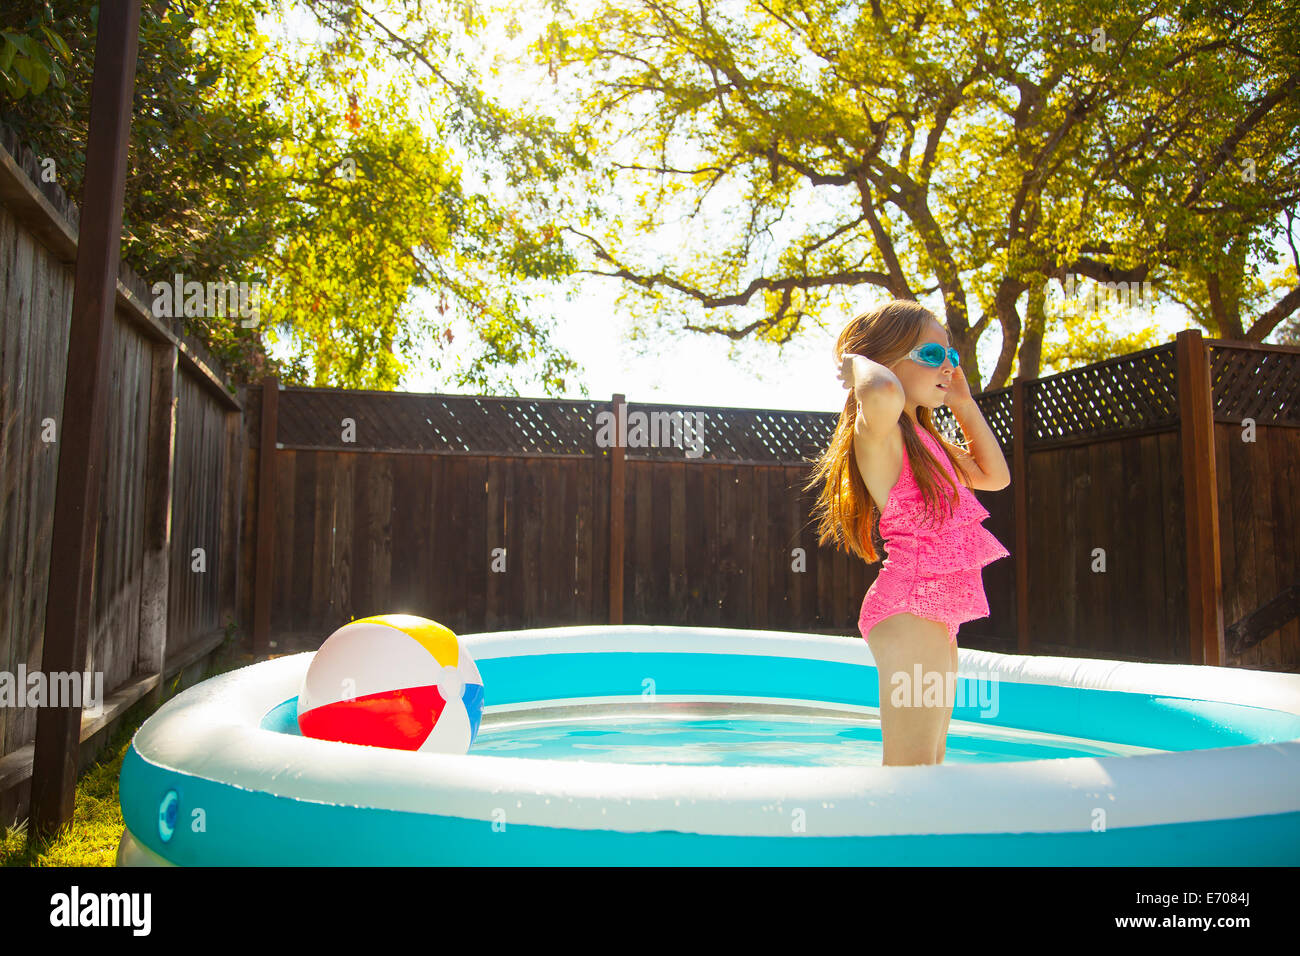 Girl in swimming goggles in garden paddling pool stock for Garden paddling pools